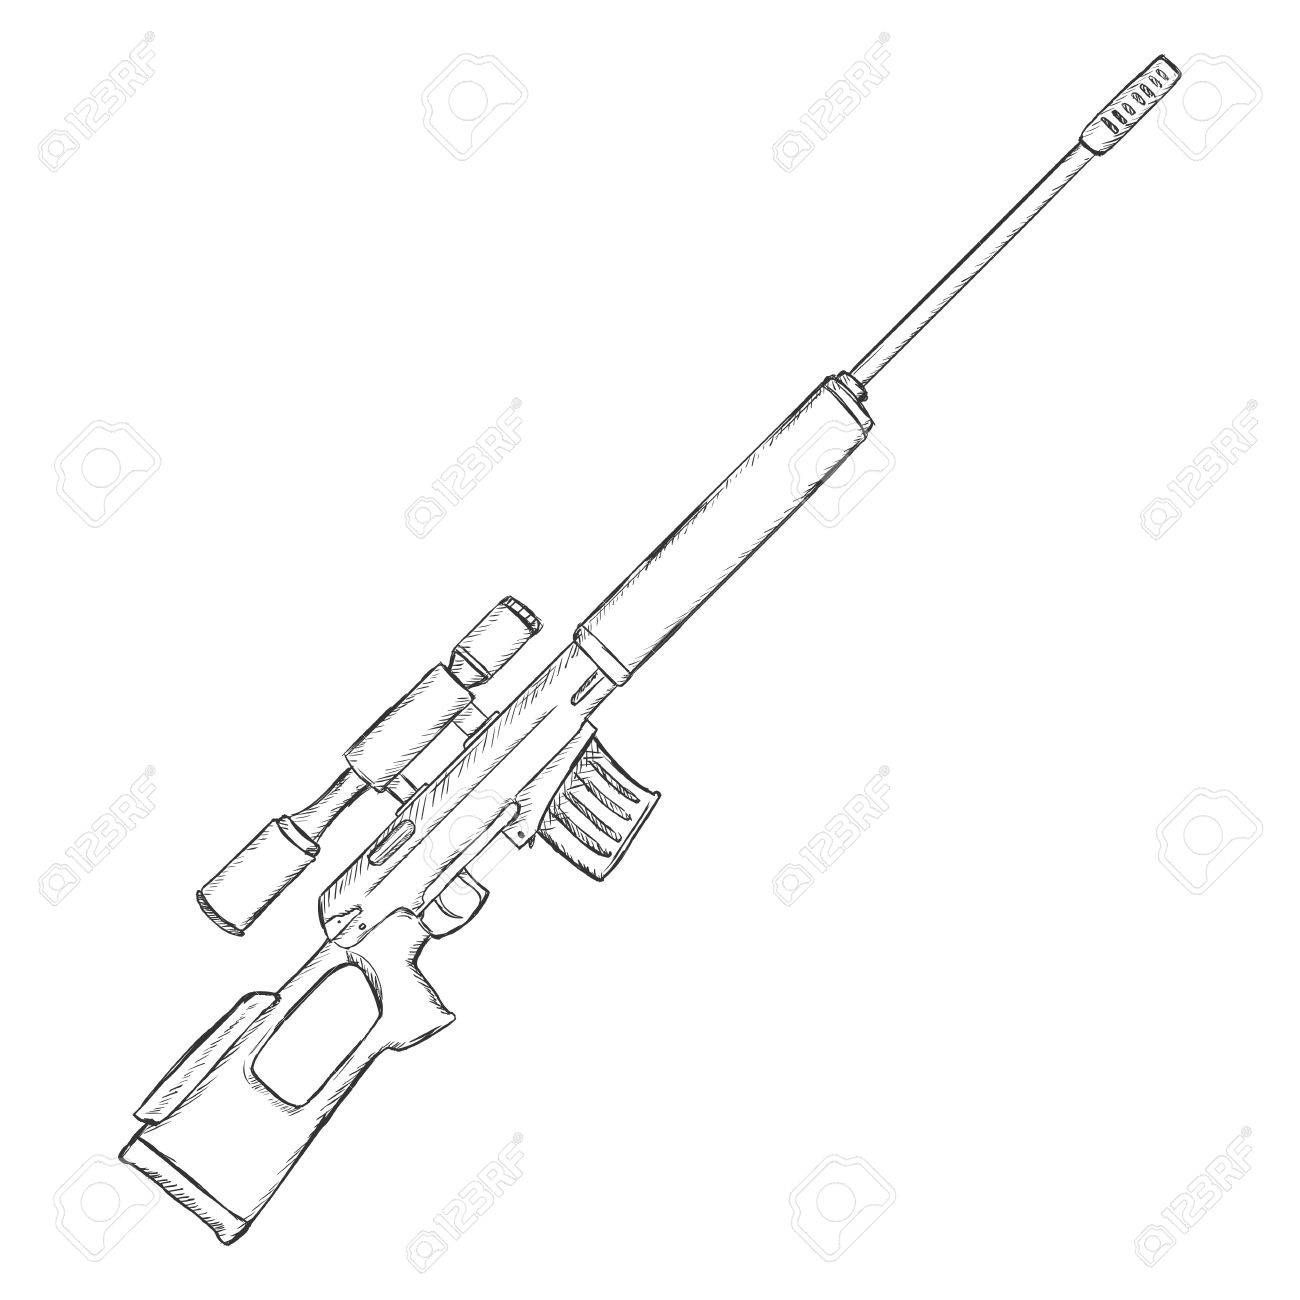 1300x1300 Vector Sketch Sniper Rifle On White Background Royalty Free